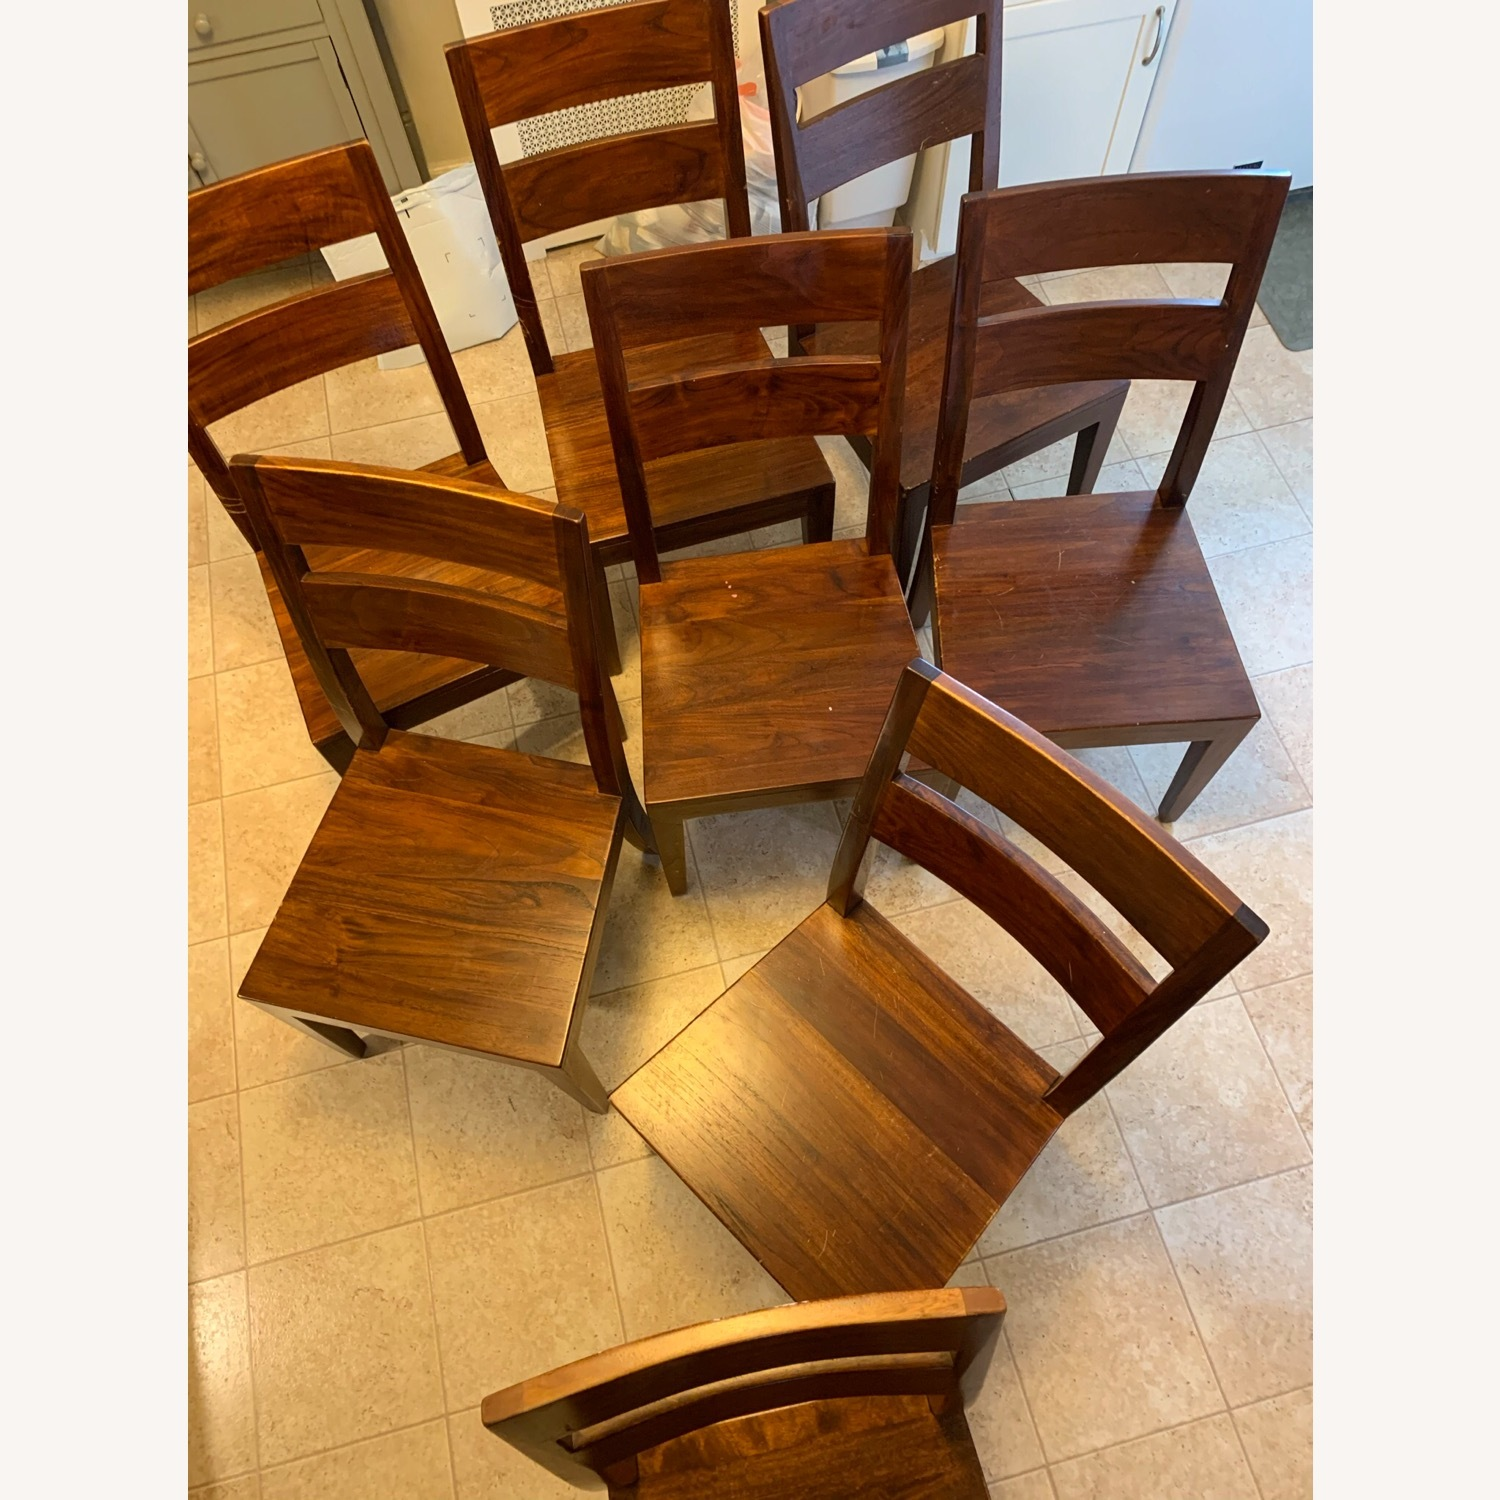 Crate and Barrel Basque Dining Table and 8 Chairs - image-4